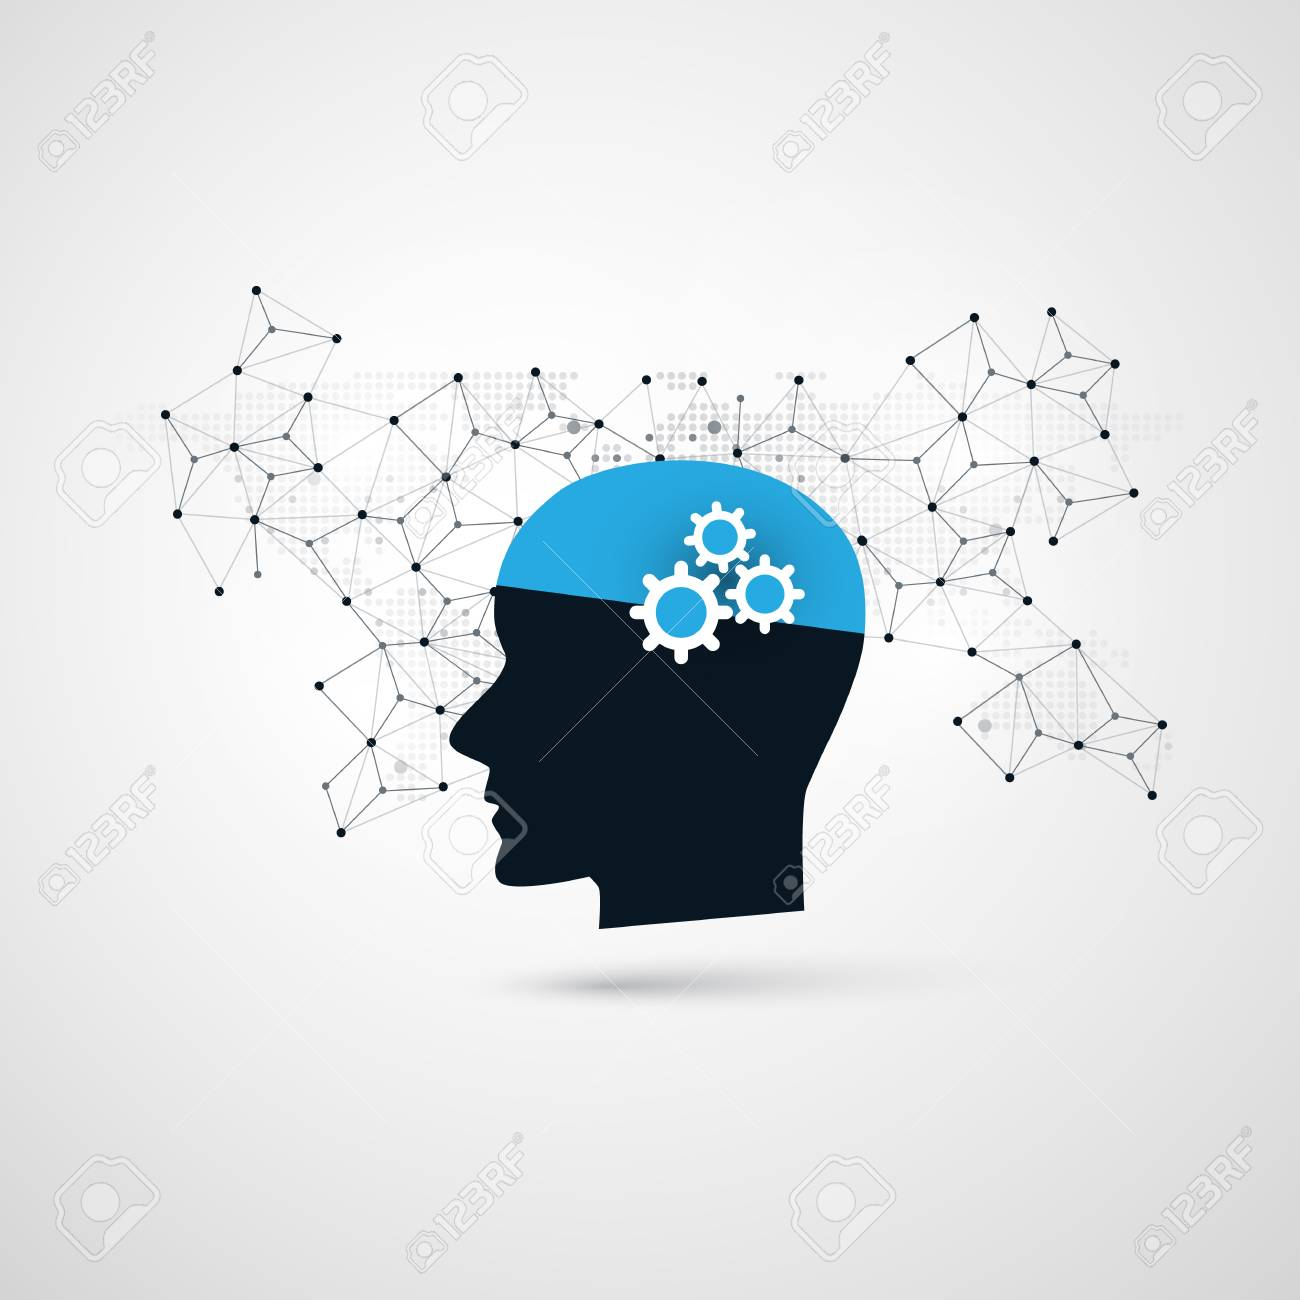 Machine Learning Artificial Intelligence Cloud Computing And